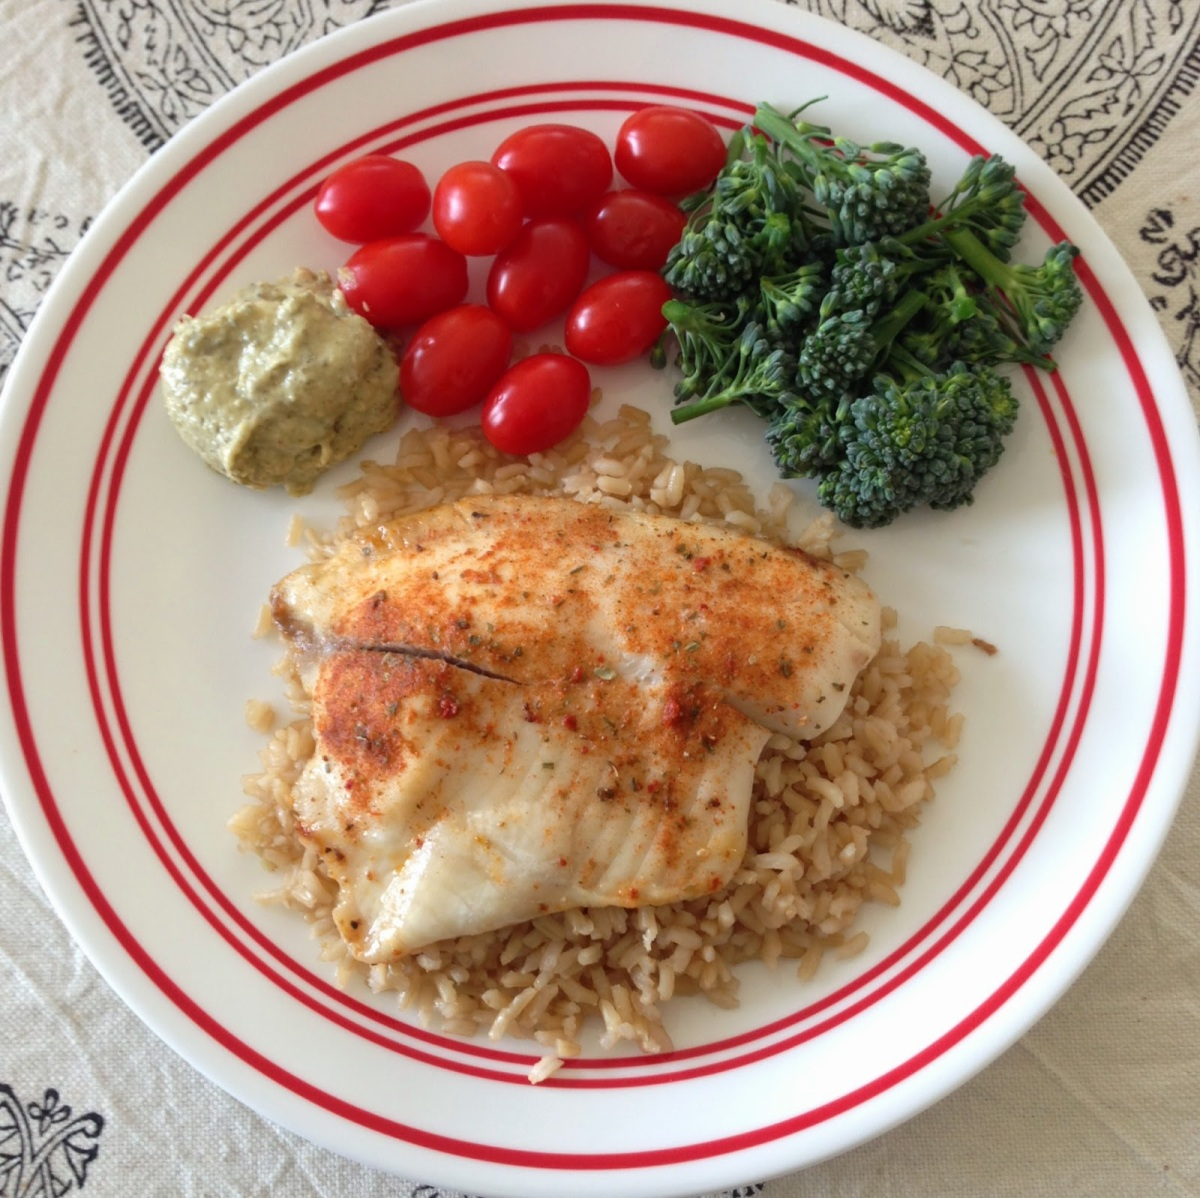 Lunch or Dinner: 4oz Tilapia with 1/2 cup brown rice, broccoli, tomatoes and 1 tbsp hummus